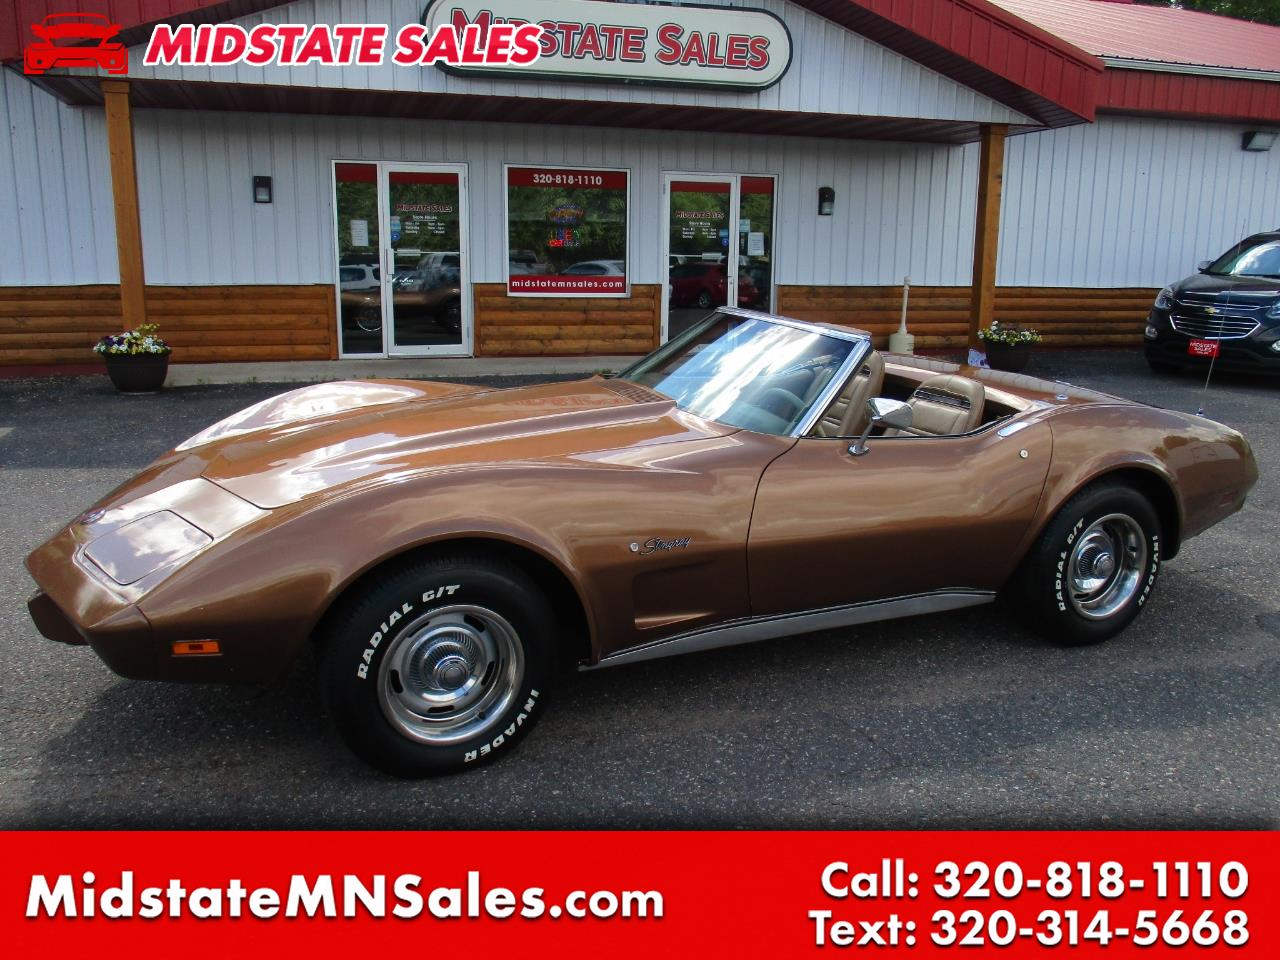 1975 Chevrolet Corvette Stingray 1LT Convertible